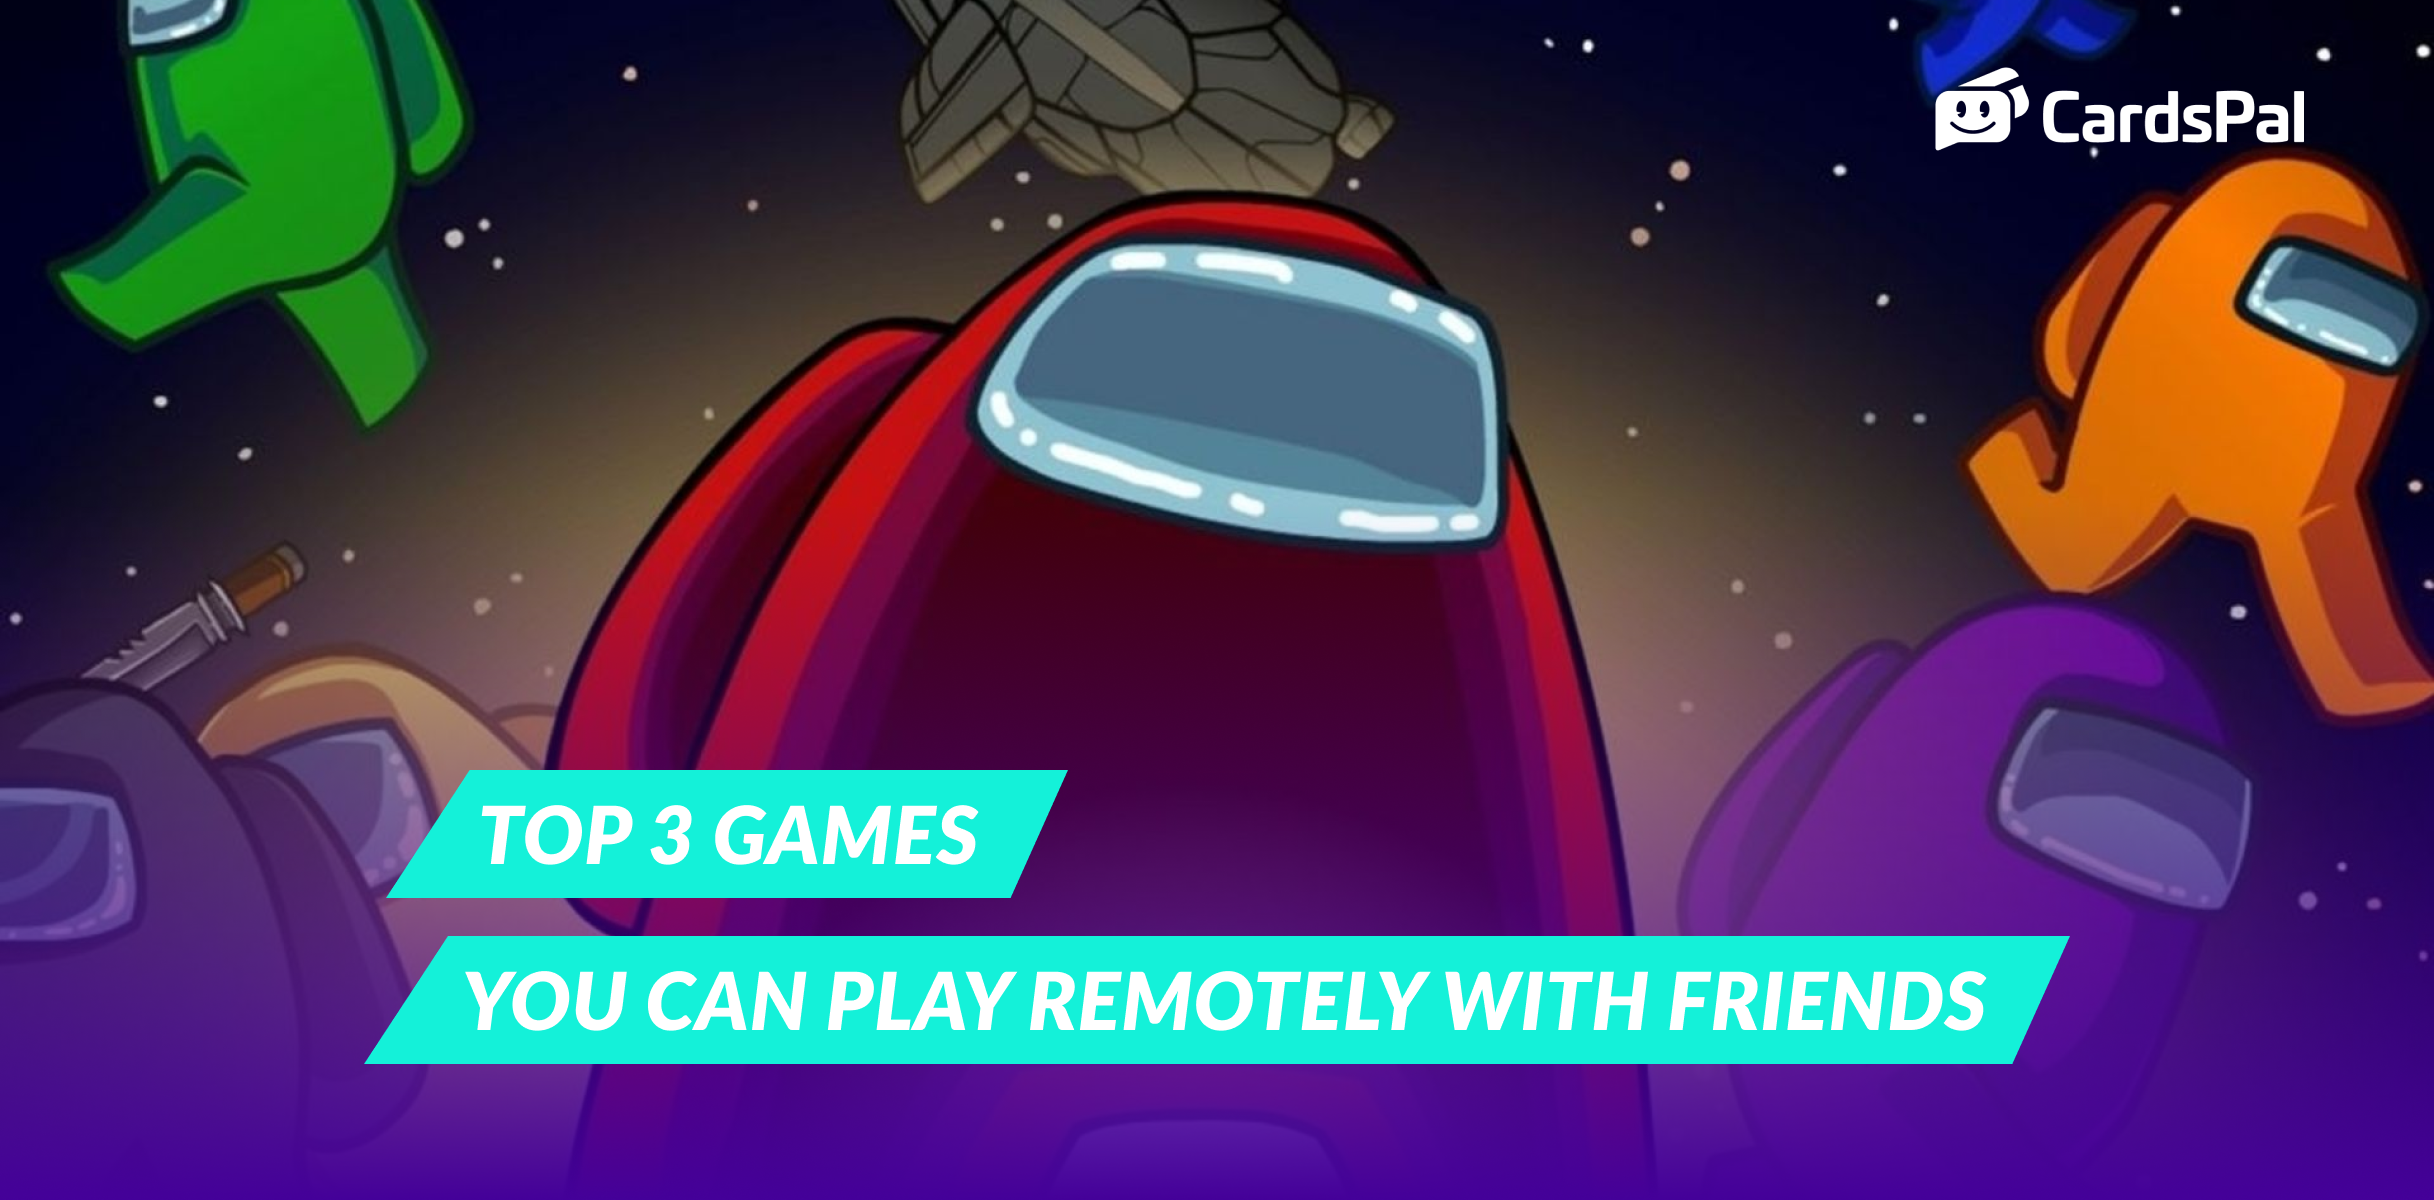 Top 3 games to play remotely with friends